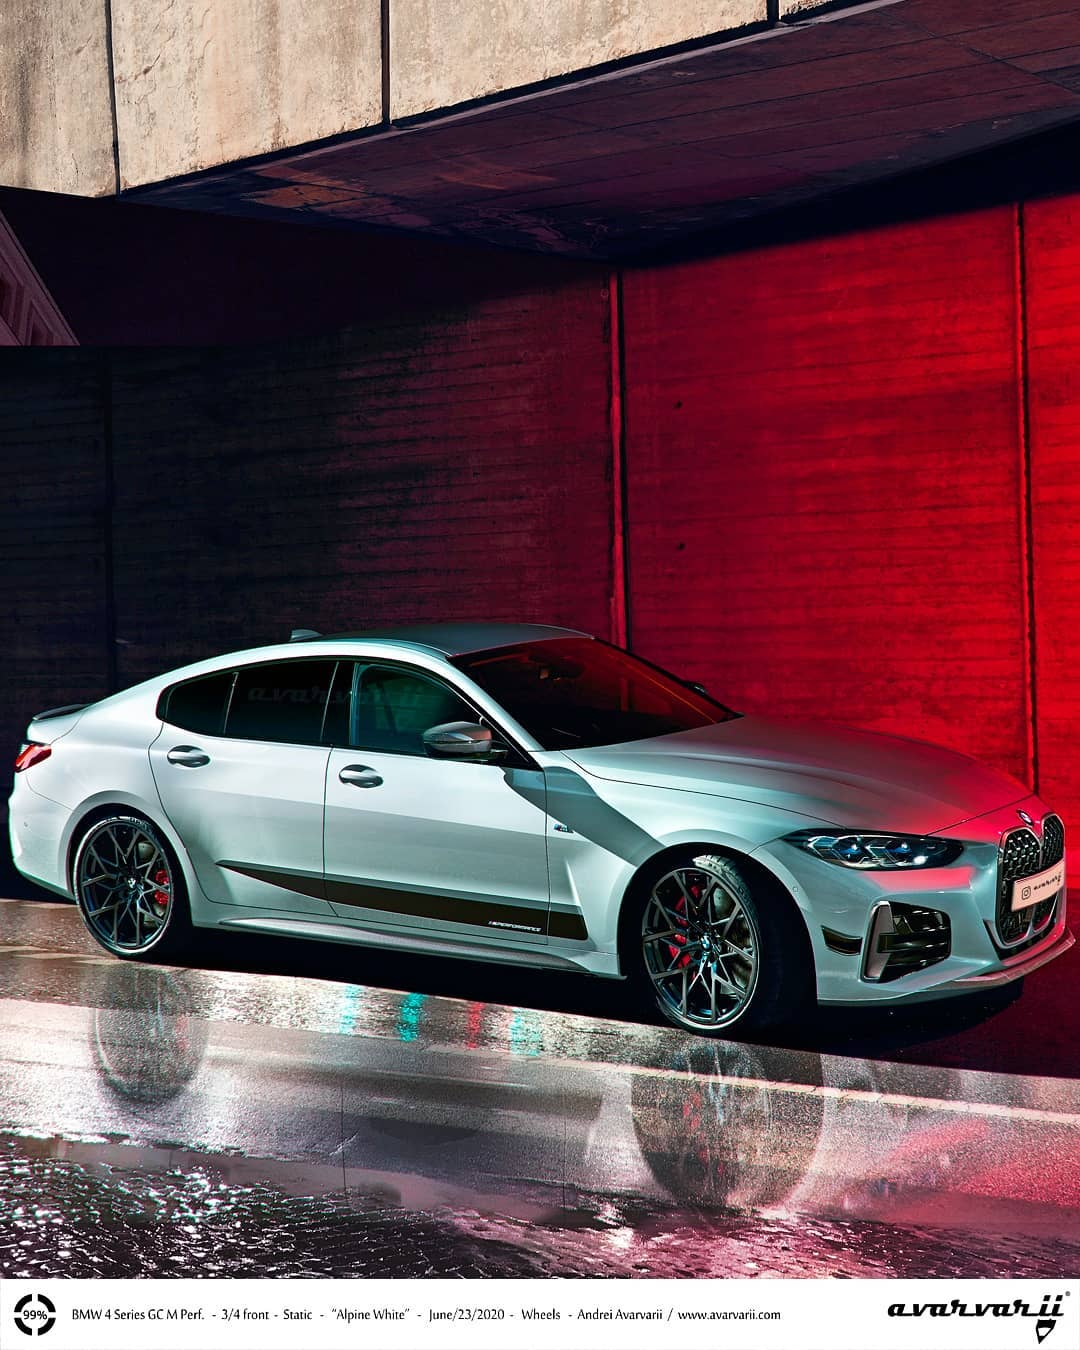 2021 Bmw 4 Series Gran Coupe Rendered With M Performance Parts